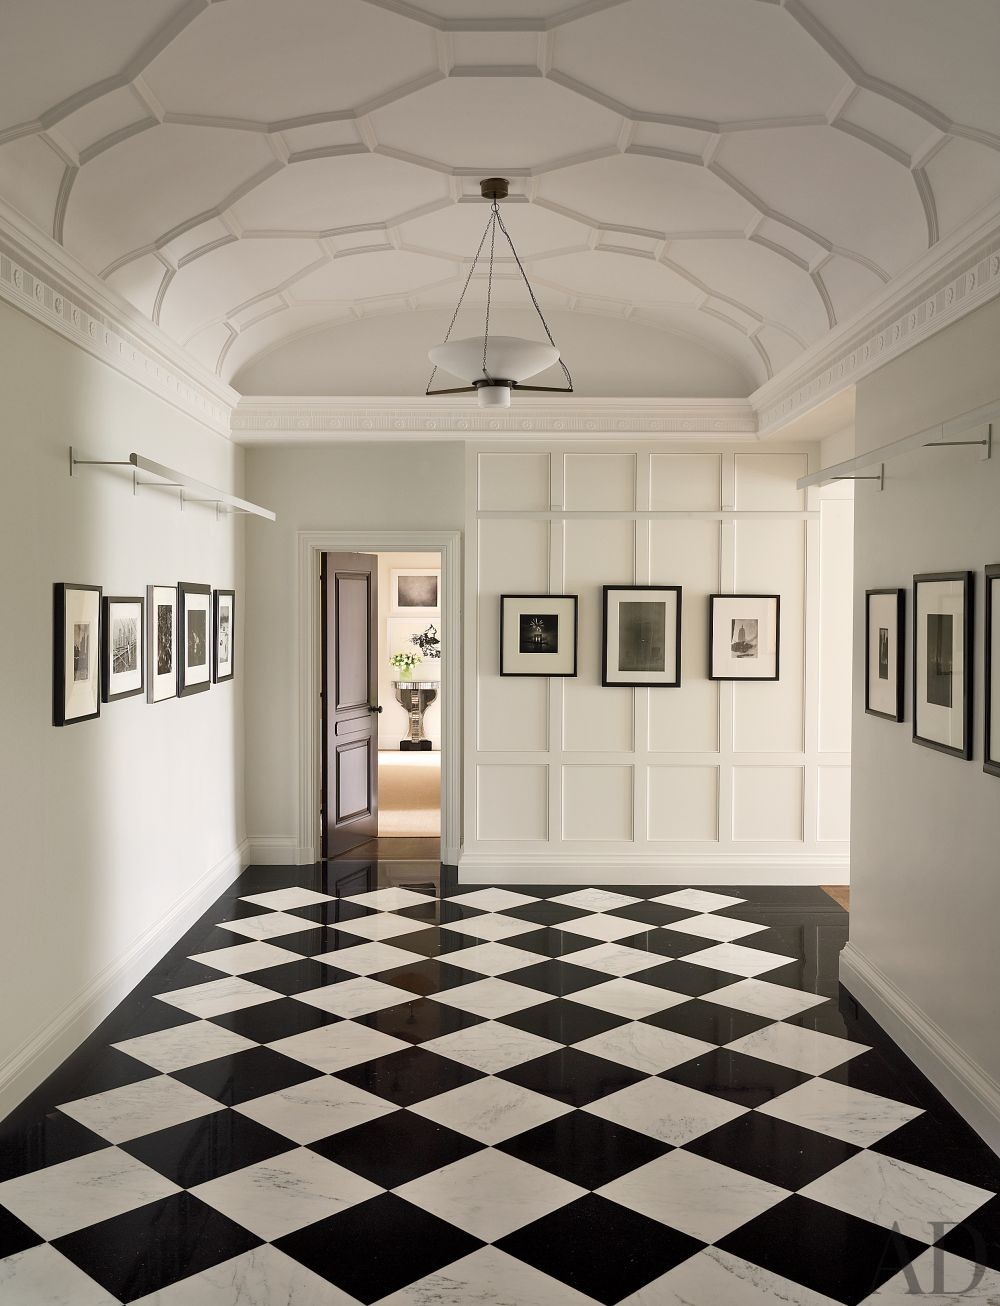 Traditional Entrance Hall by Shelton, Mindel & Associates in New York, New York